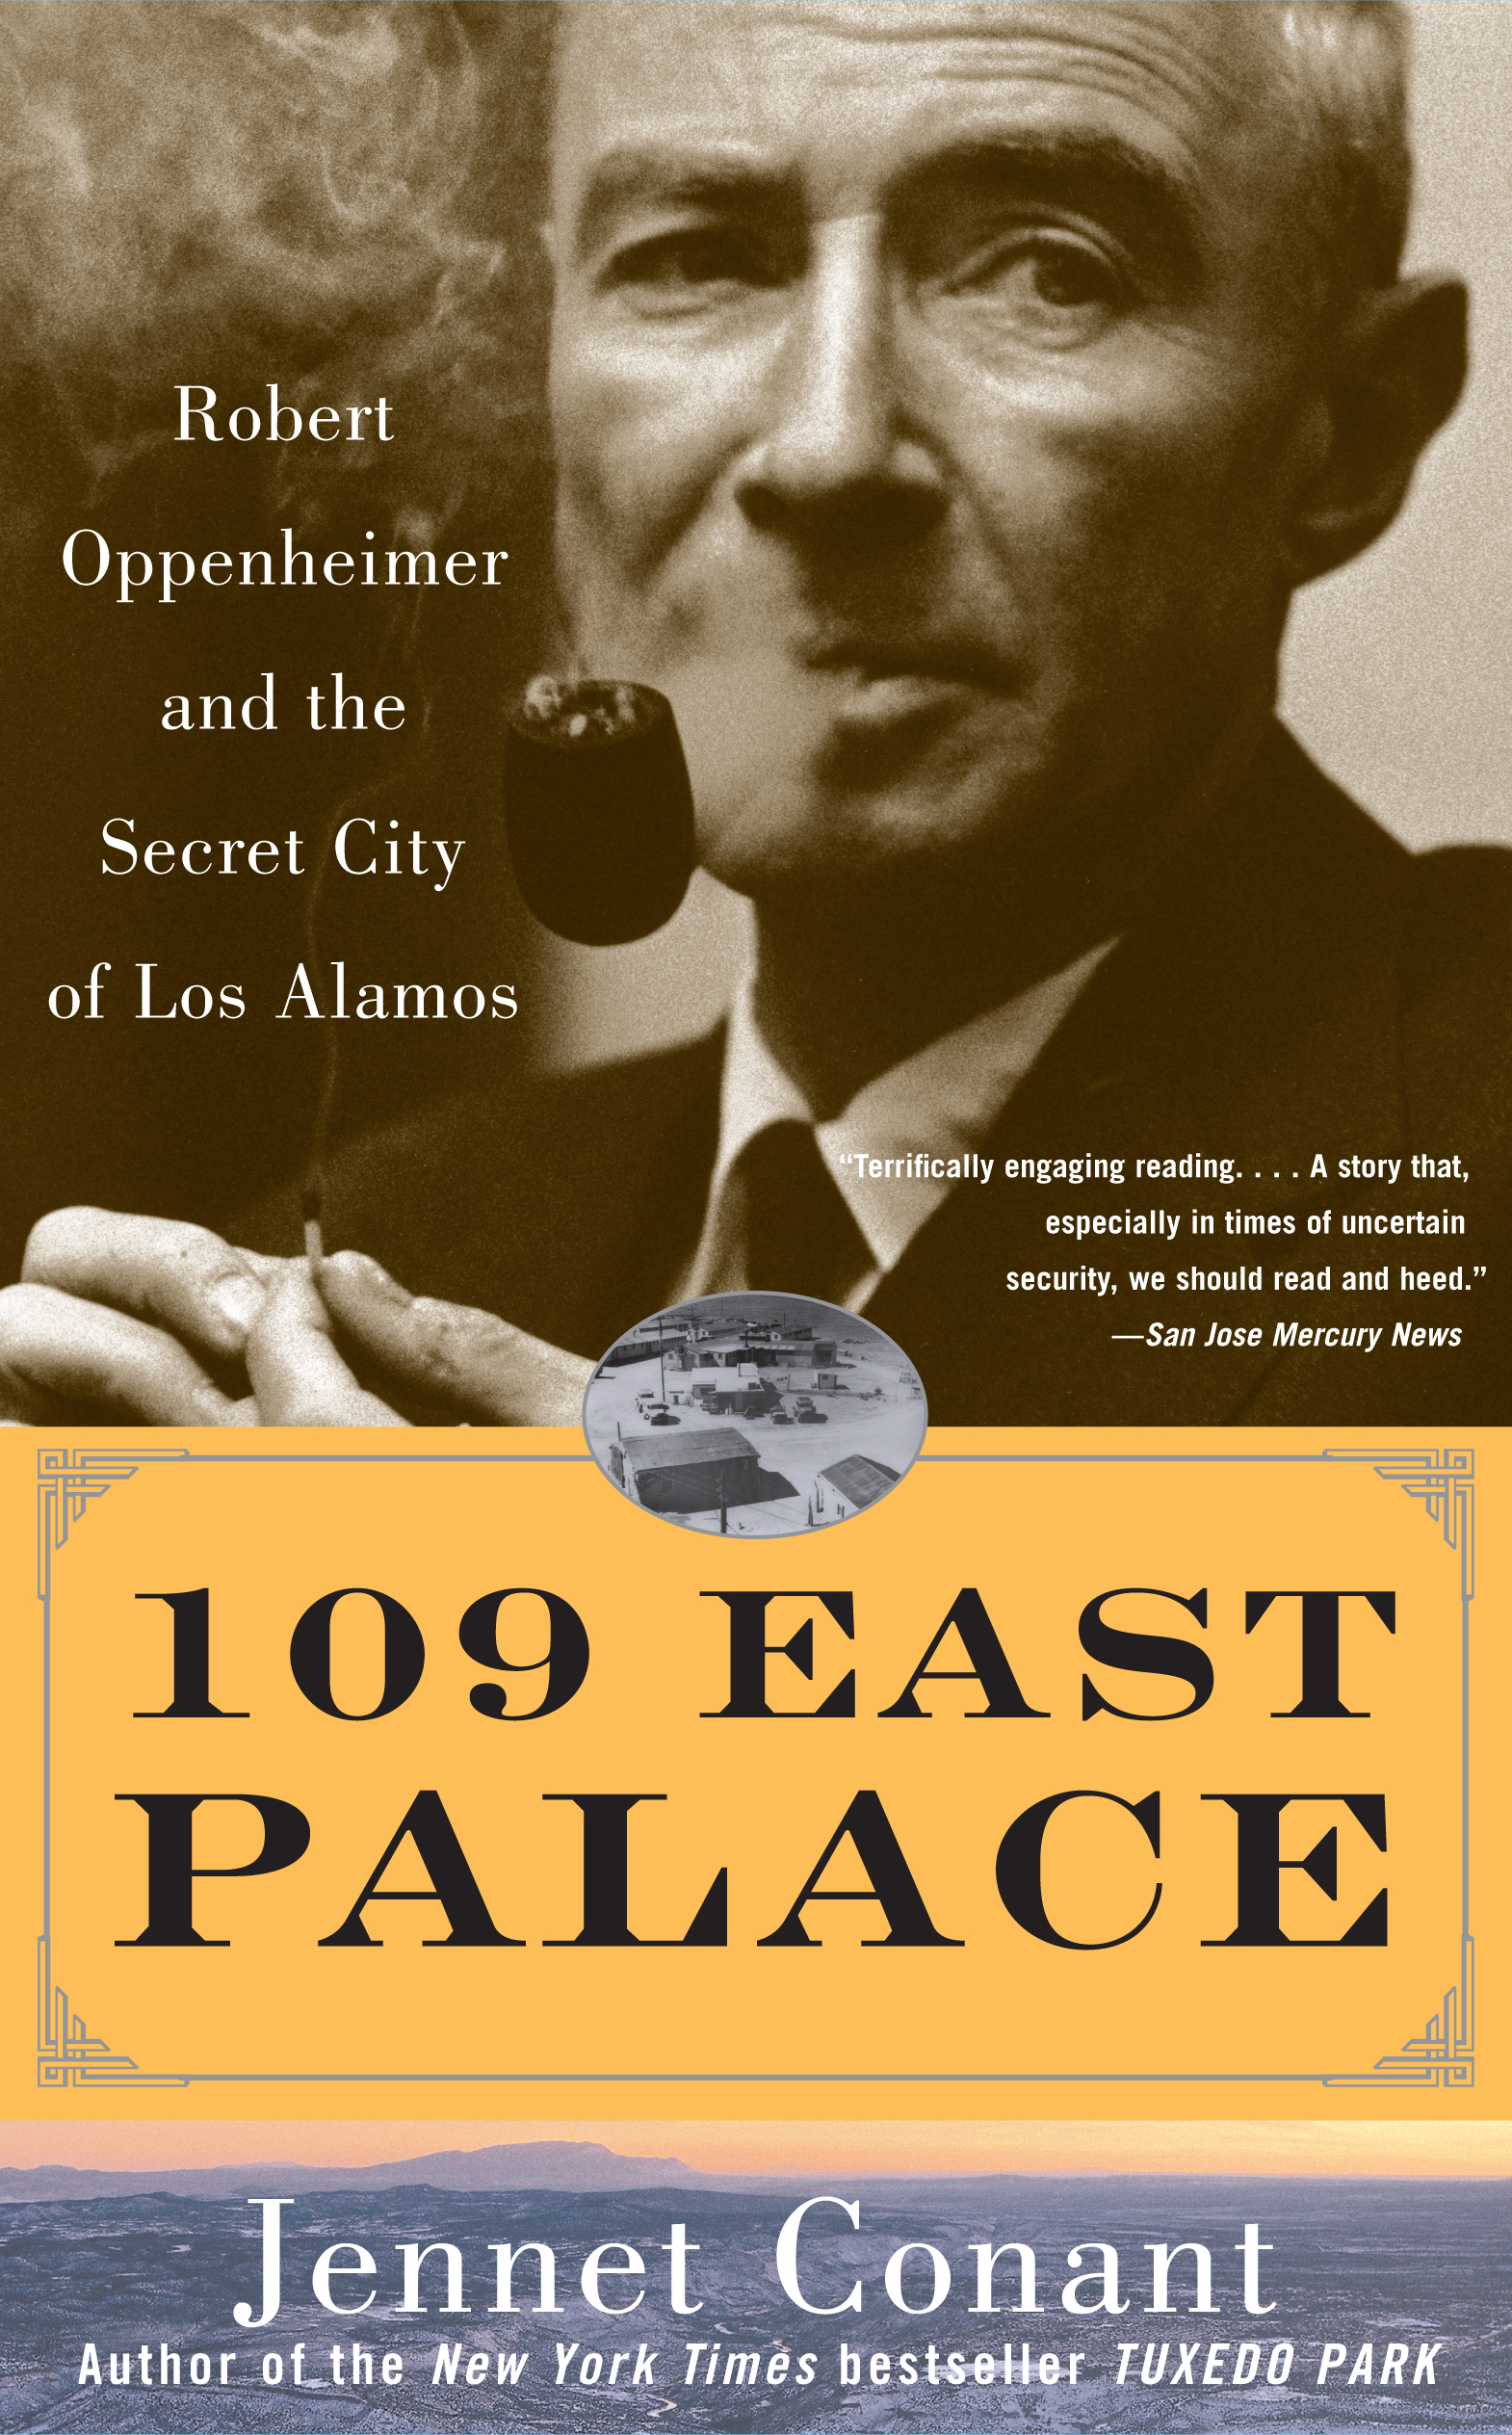 Robert Oppenheimer and the Secret City of Los Alamos. 109 East Palace